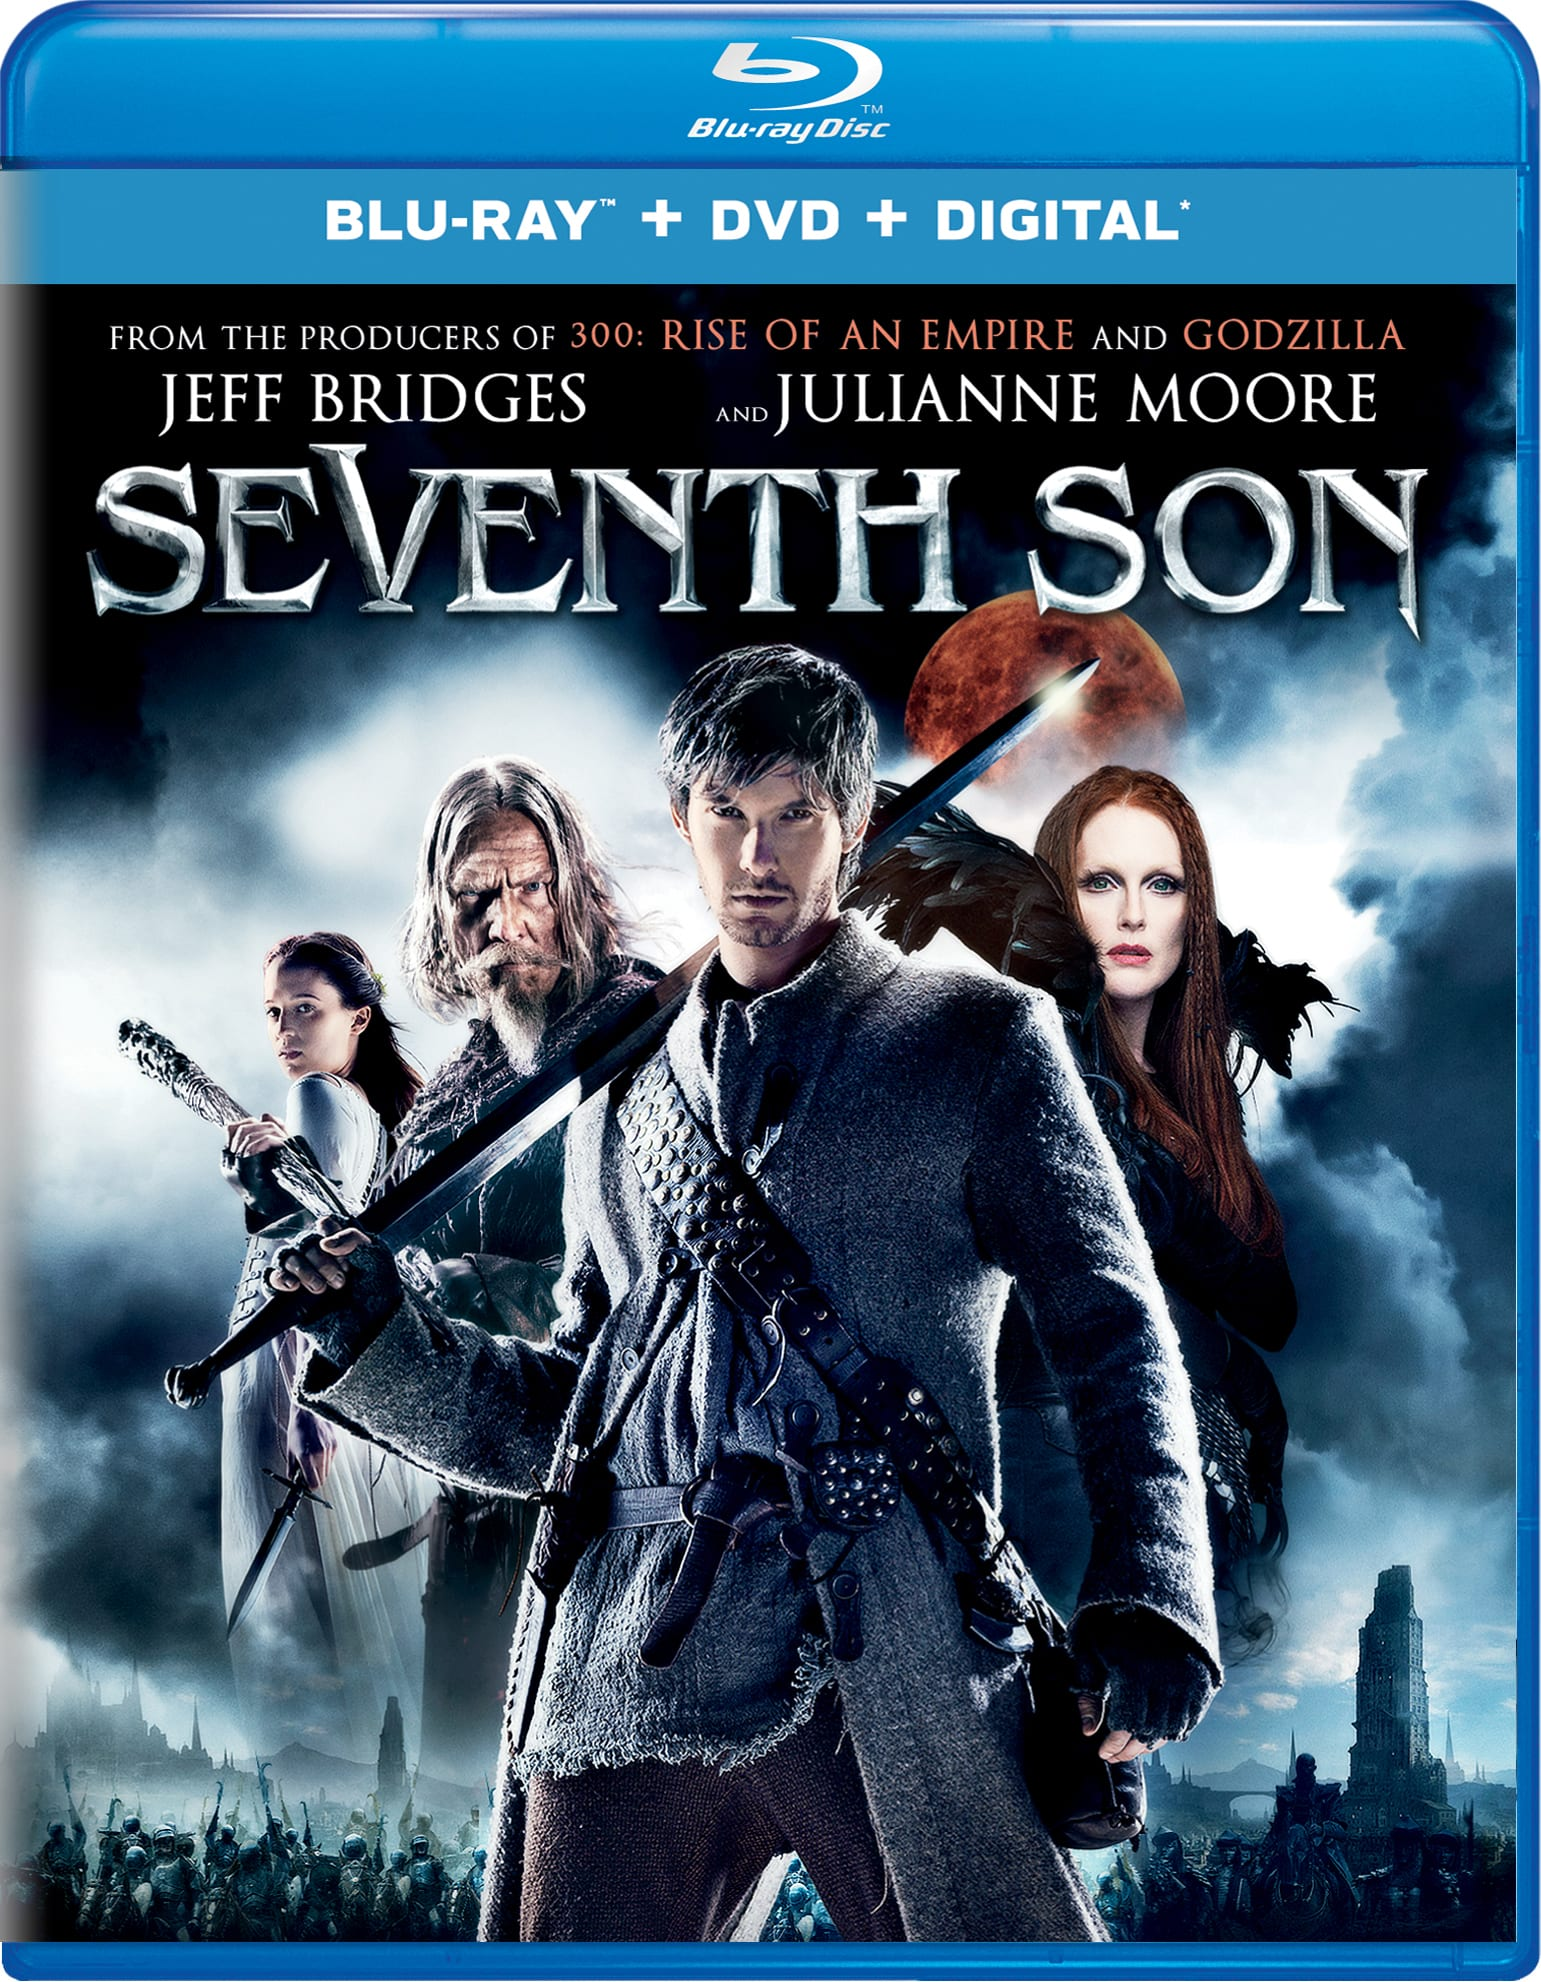 Seventh Son (DVD + Digital) [Blu-ray]